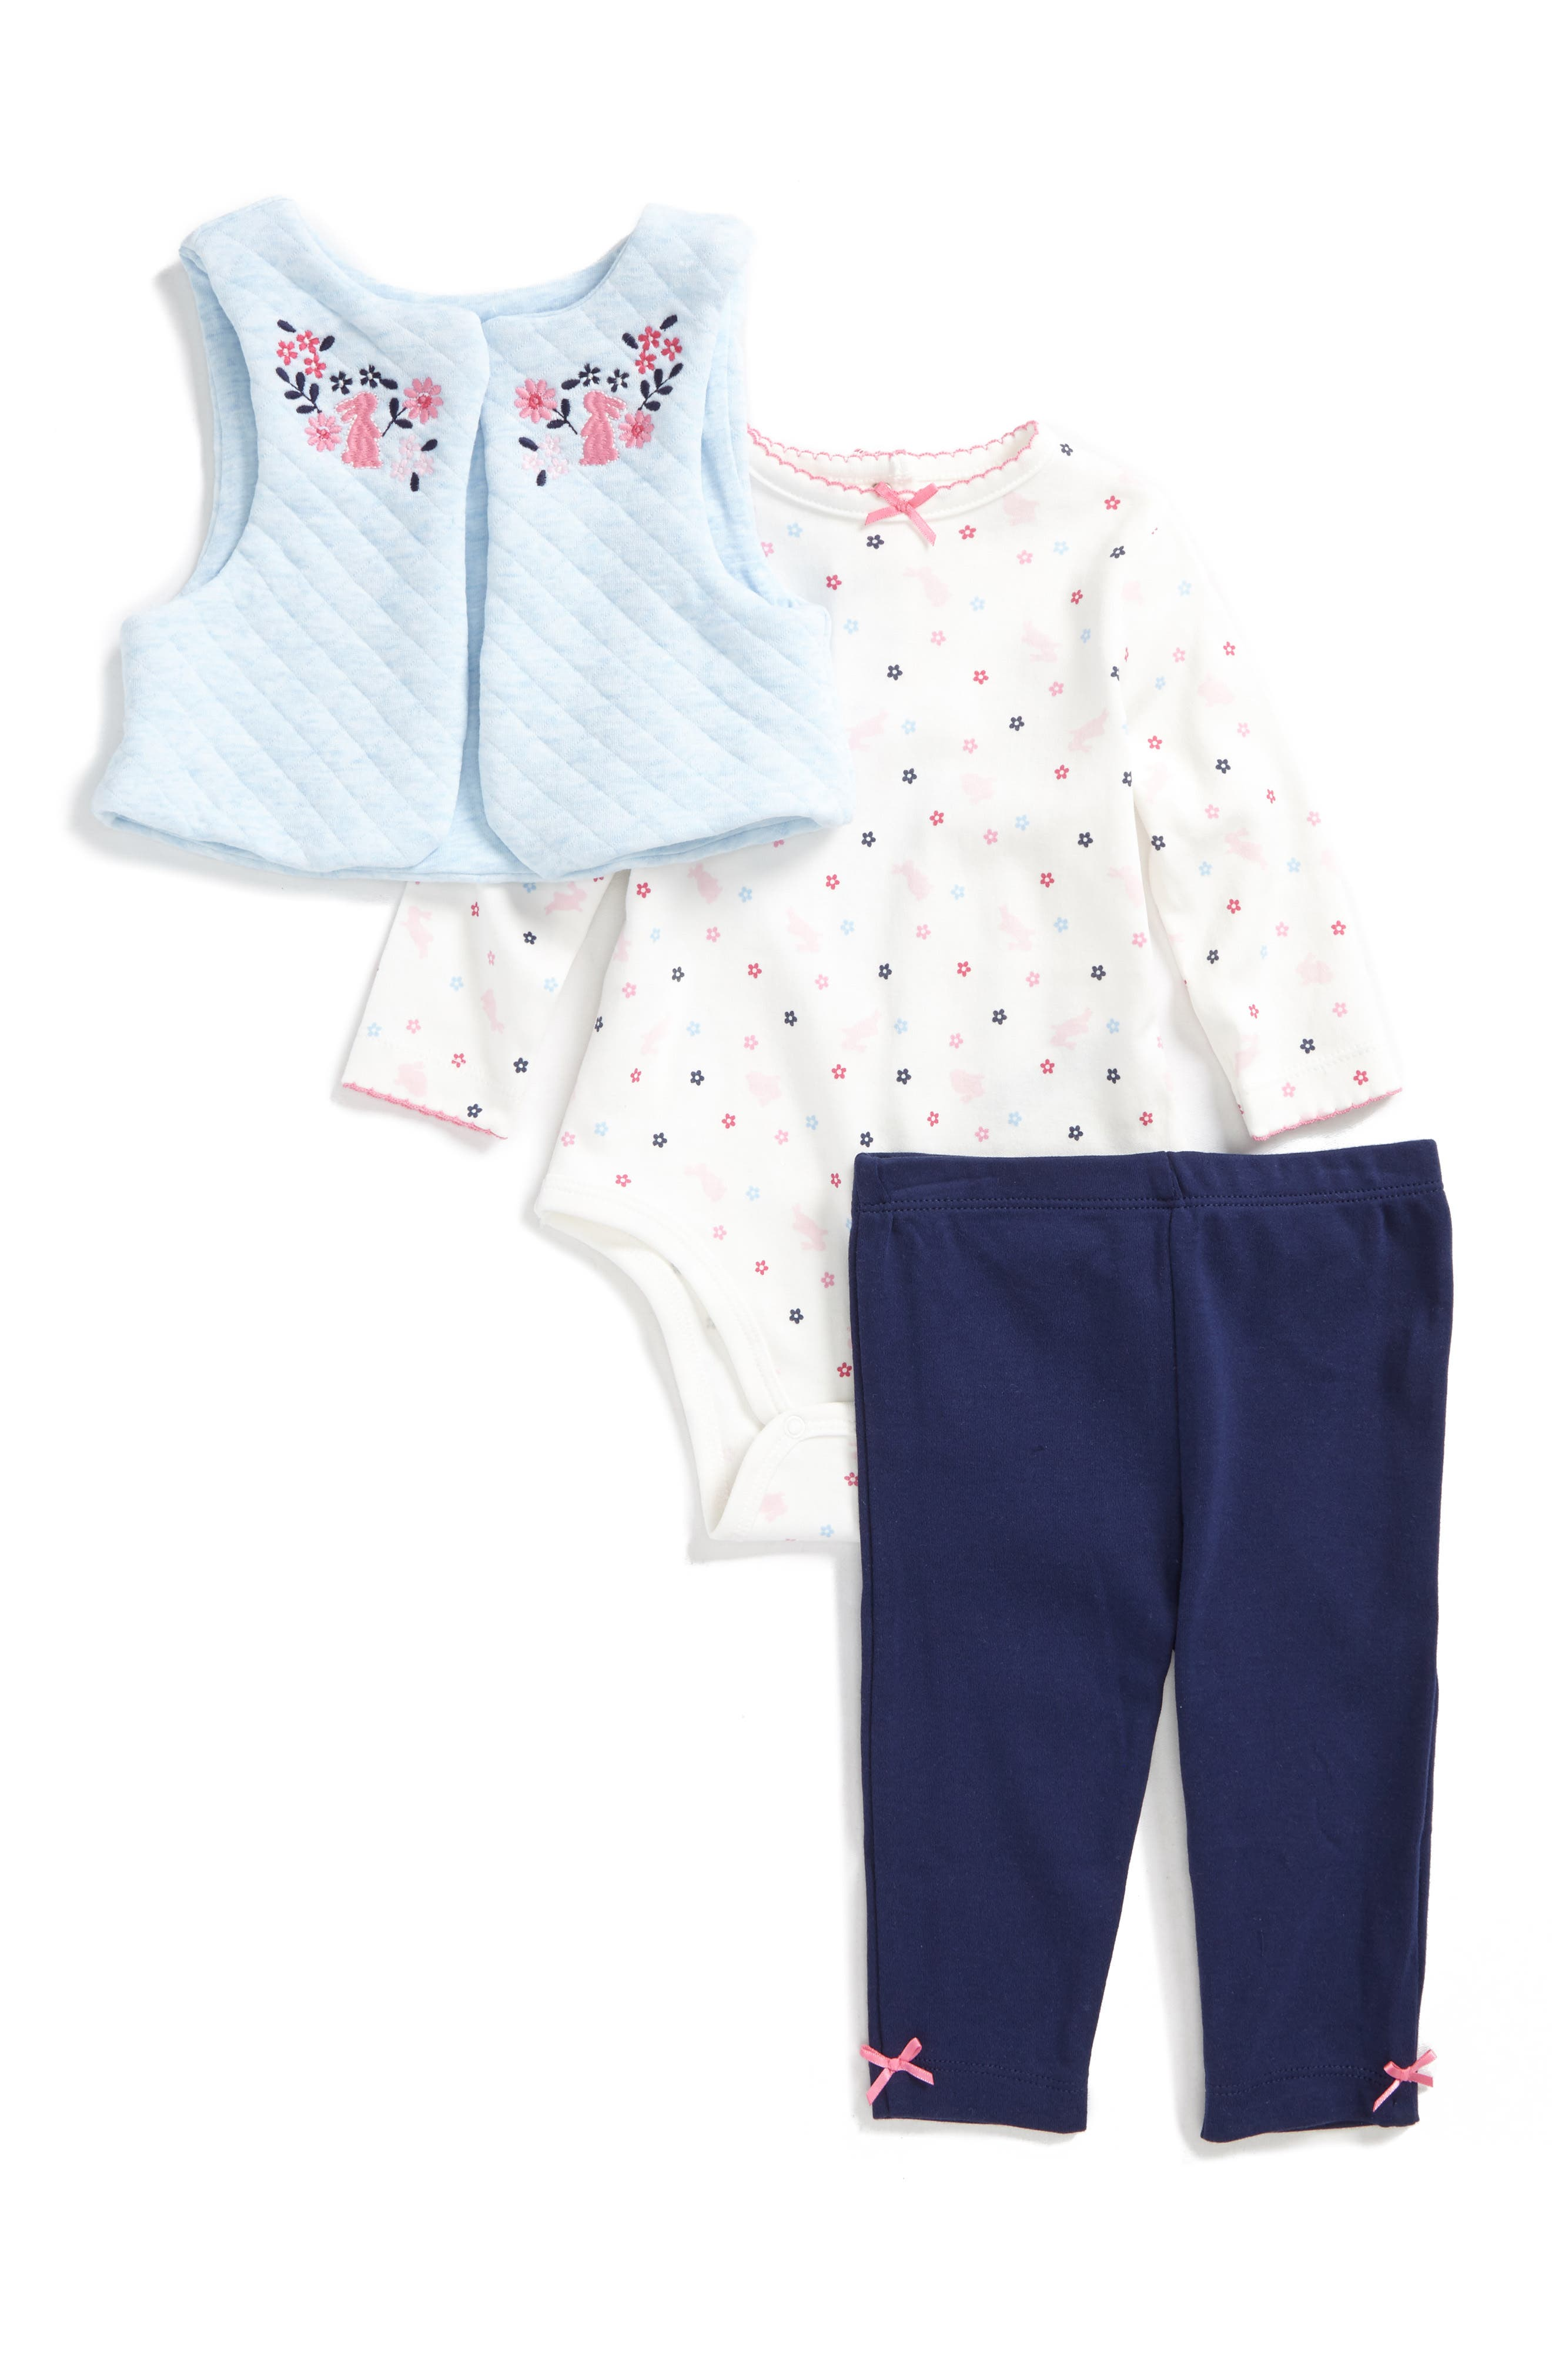 Main Image - Little Me Bunny Vest, Bodysuit & Pants Set (Baby Girls)